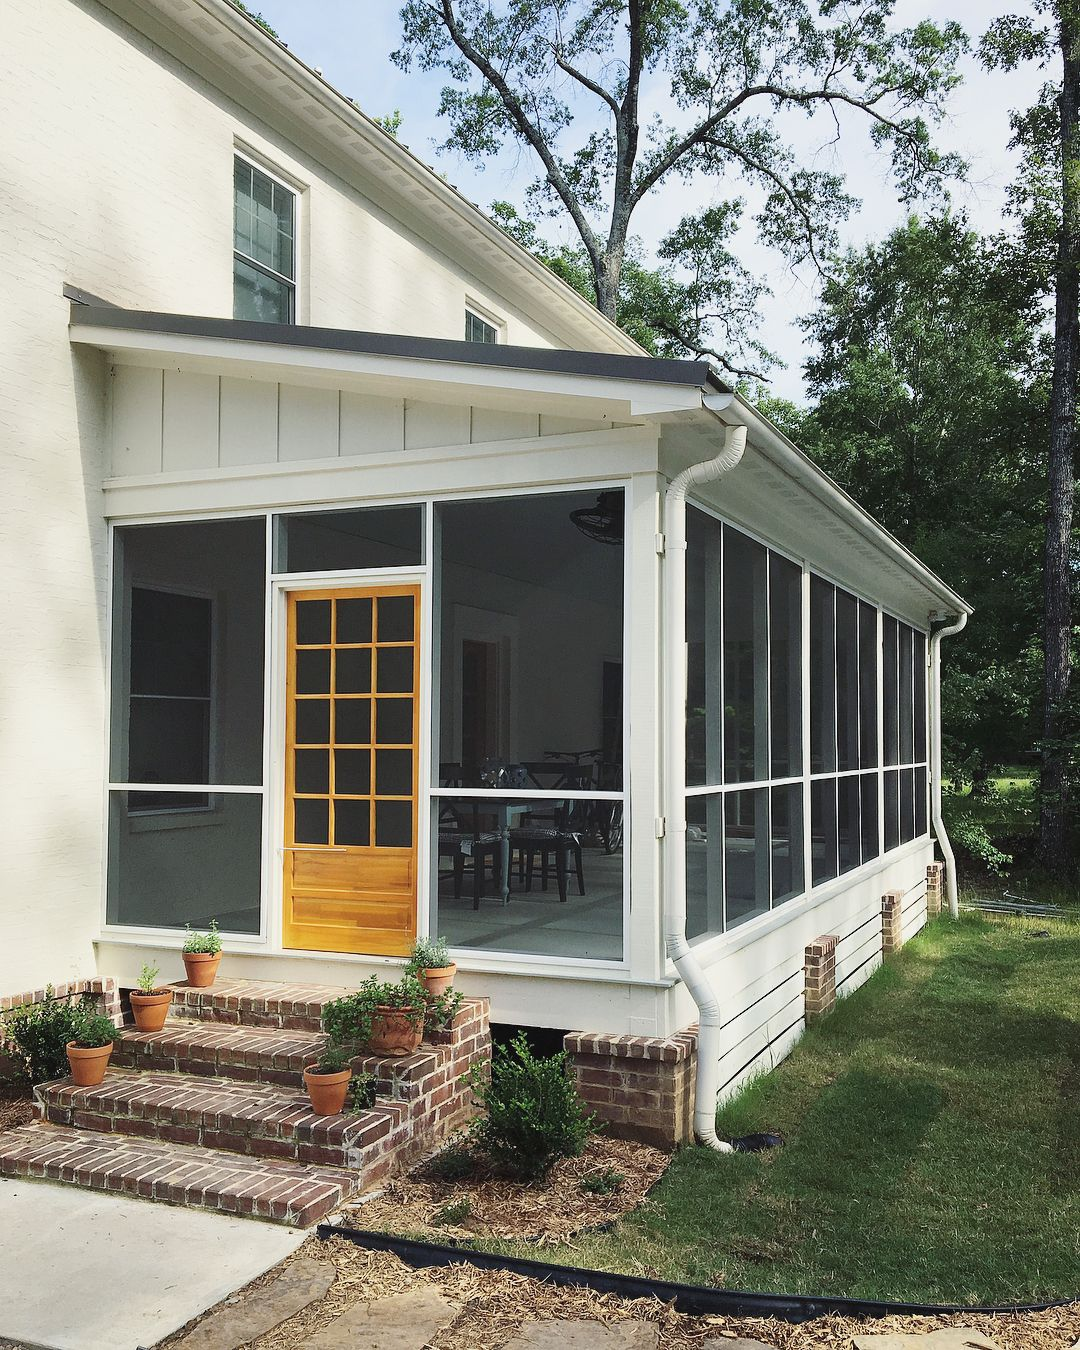 Screen Porch Ideas Designs: Screened Porch W/ Side Entry, Brick Steps